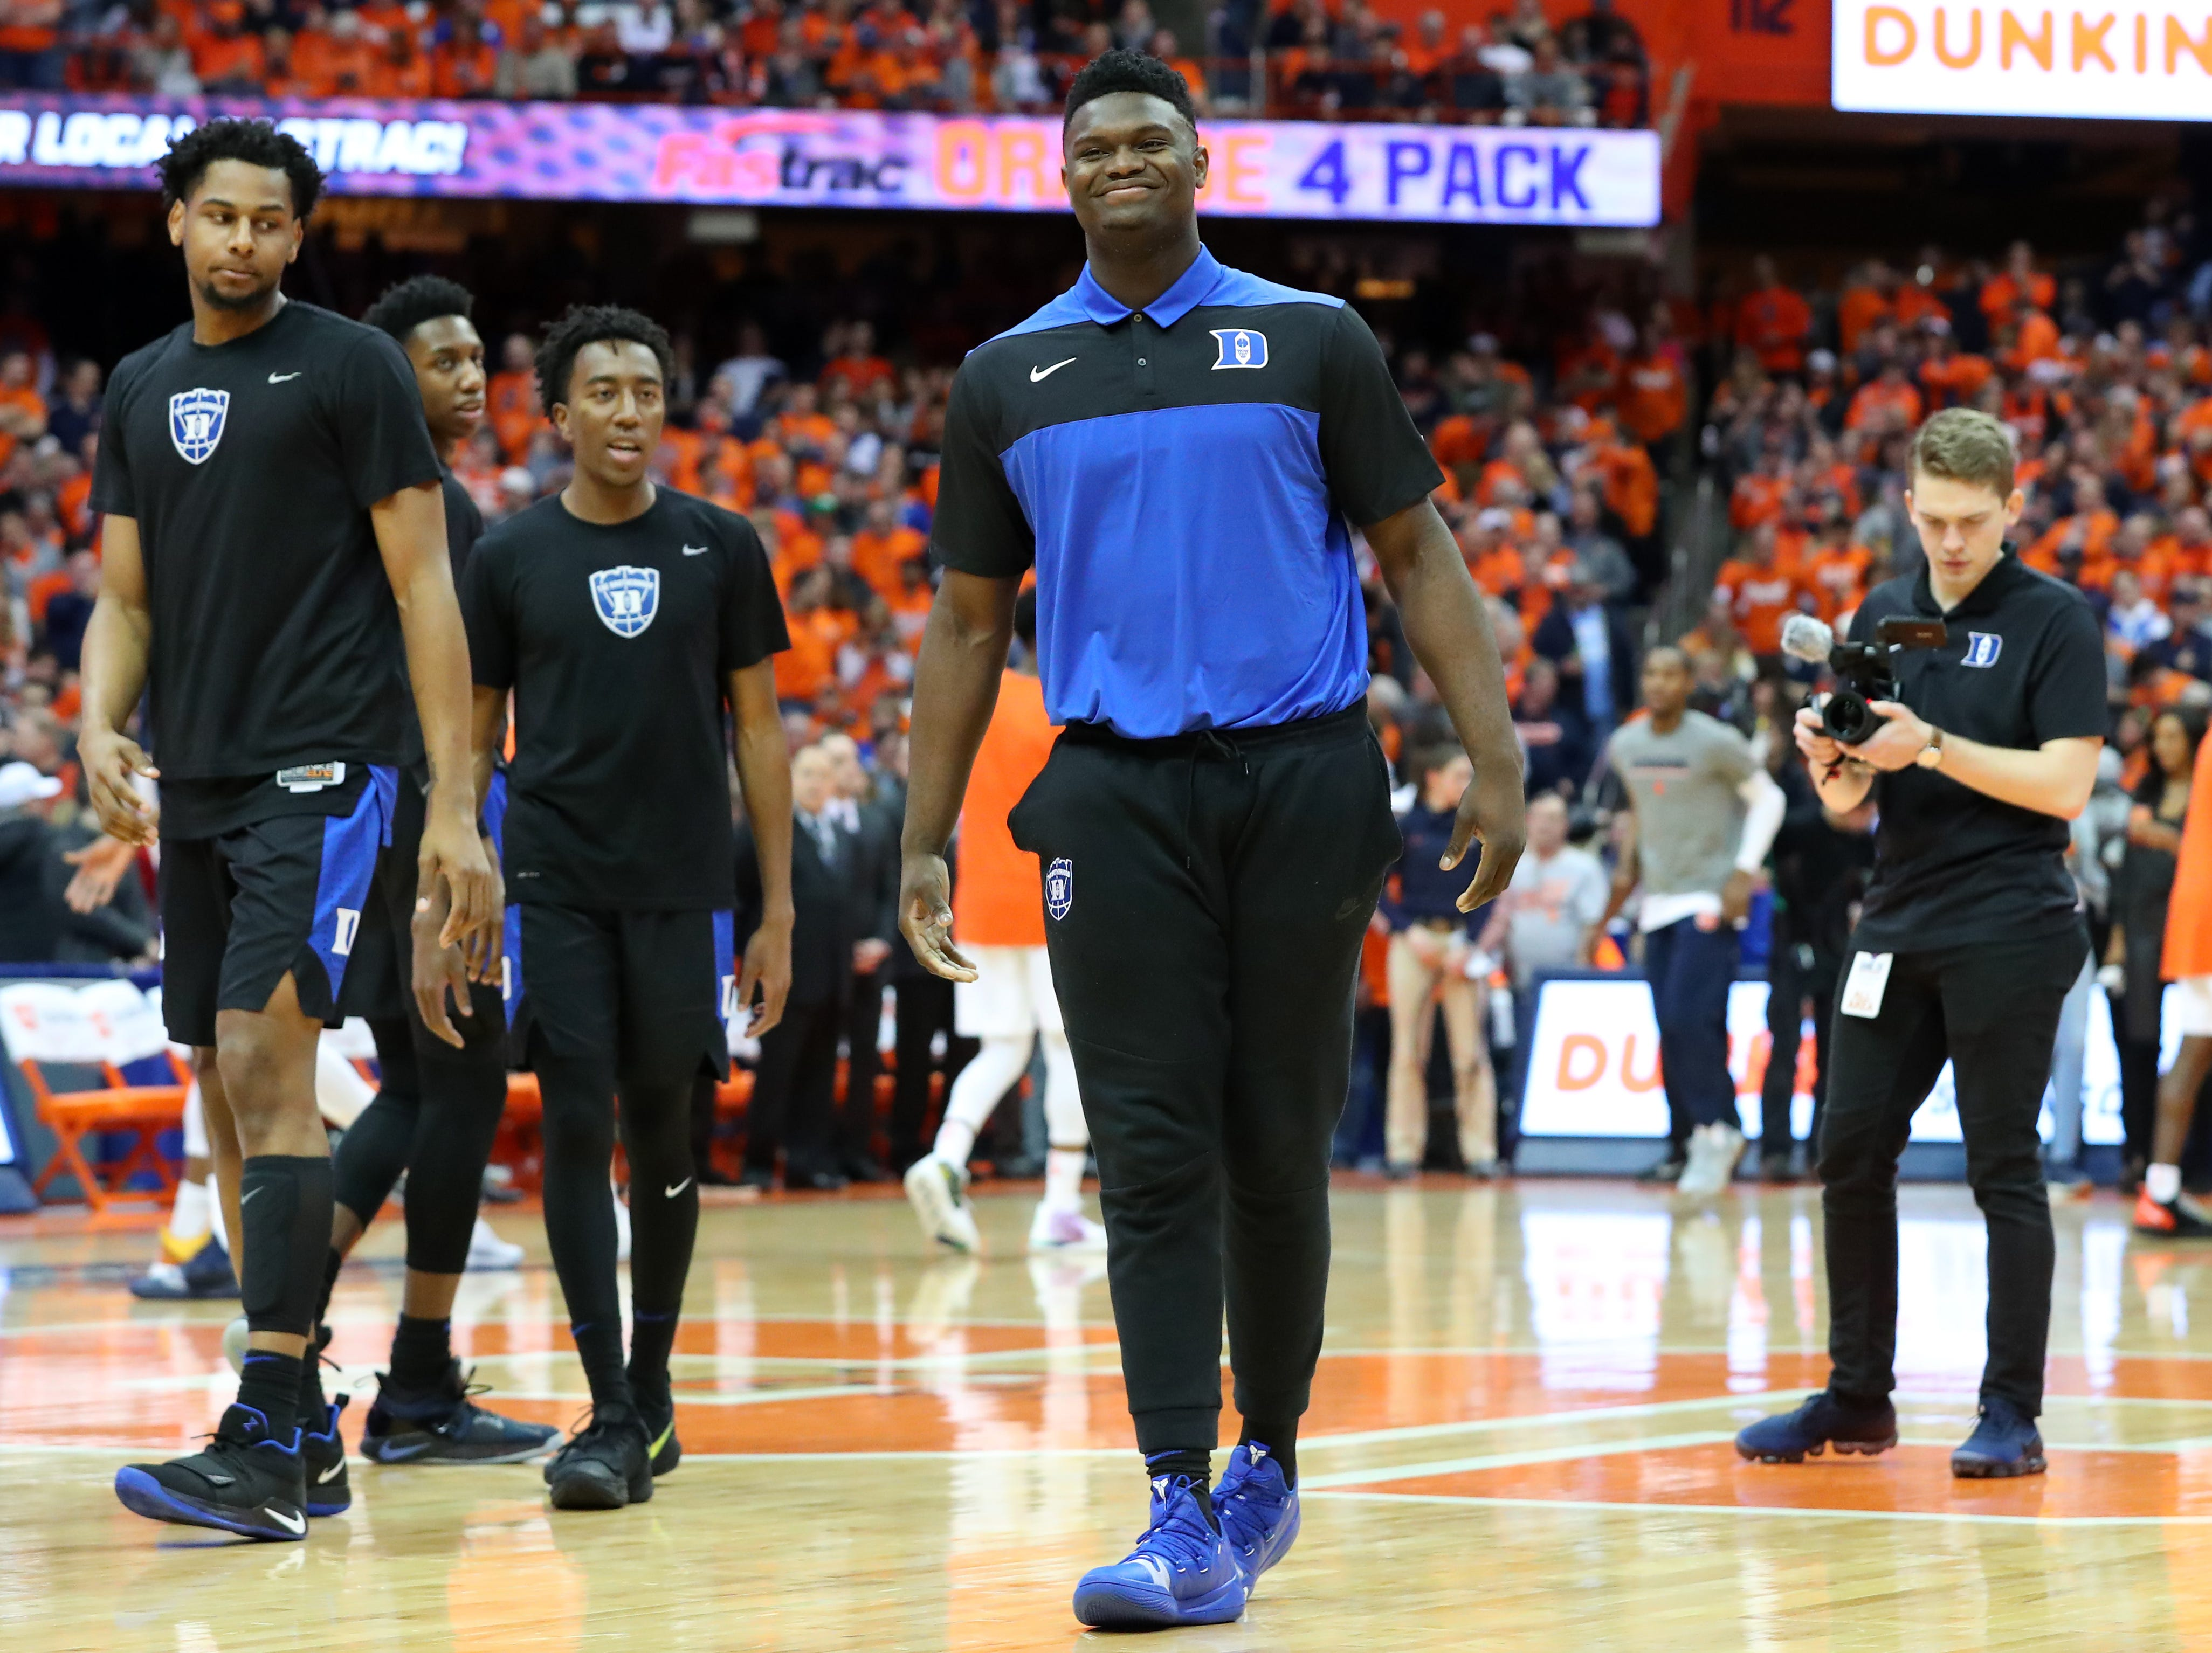 SYRACUSE, NY - FEBRUARY 23:  Zion Williamson #1 of the Duke Blue Devils looks on prior to the game against the Syracuse Orange at the Carrier Dome on February 23, 2019 in Syracuse, New York. (Photo by Rich Barnes/Getty Images)